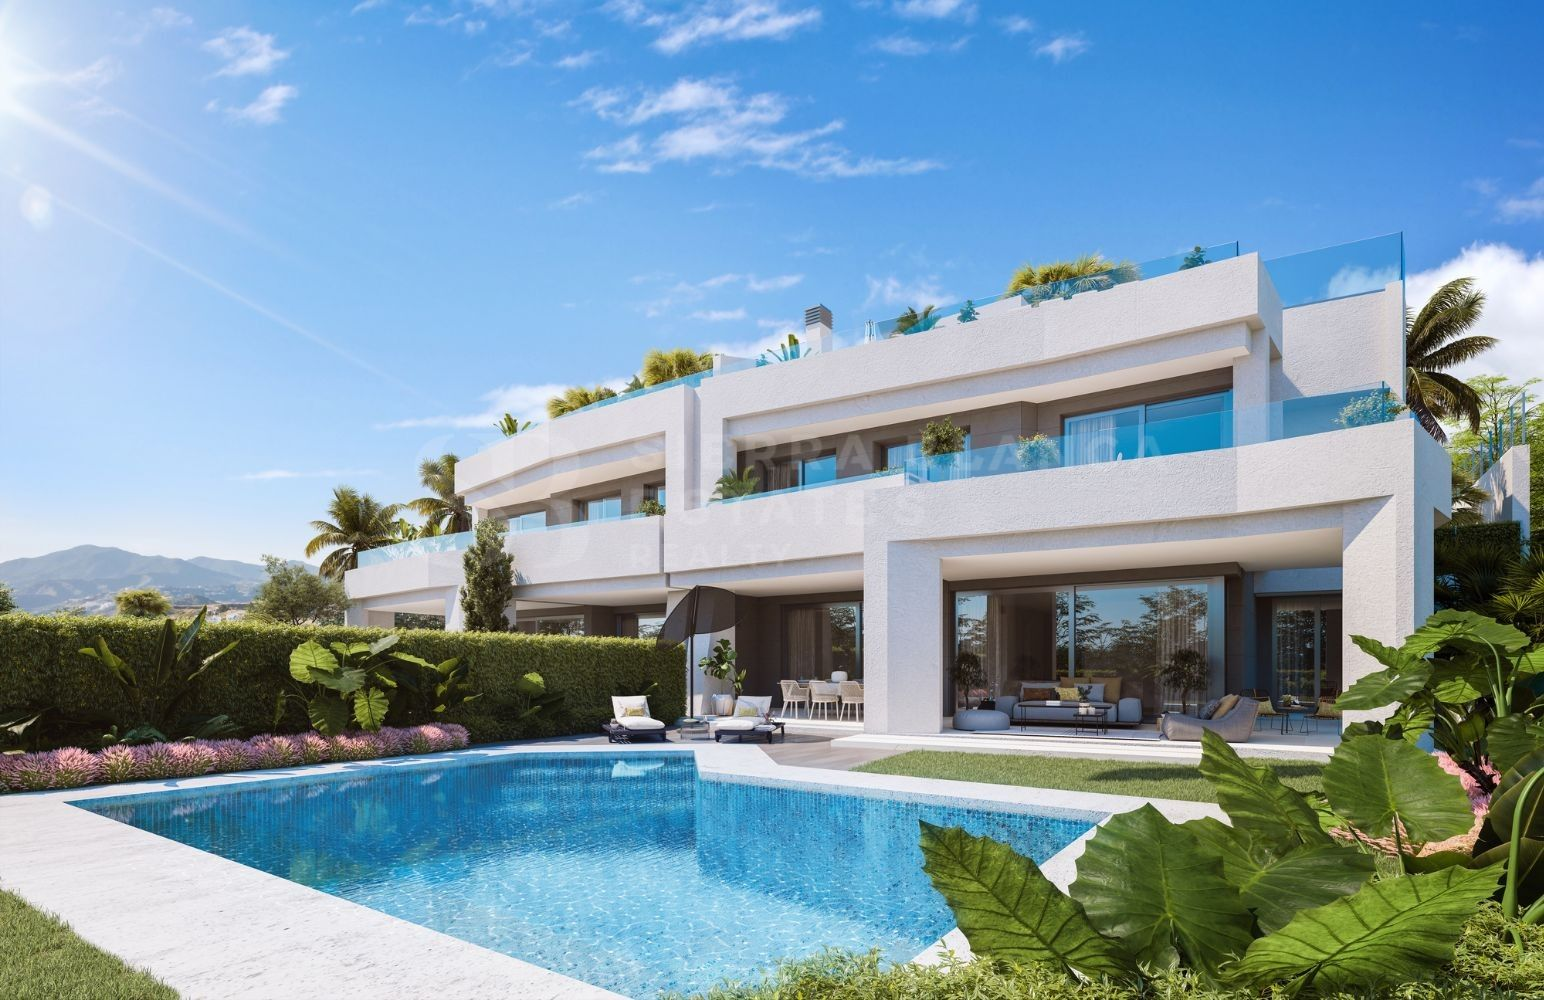 Soul Marbella - Luxury Resort Complex in Santa Clara Golf